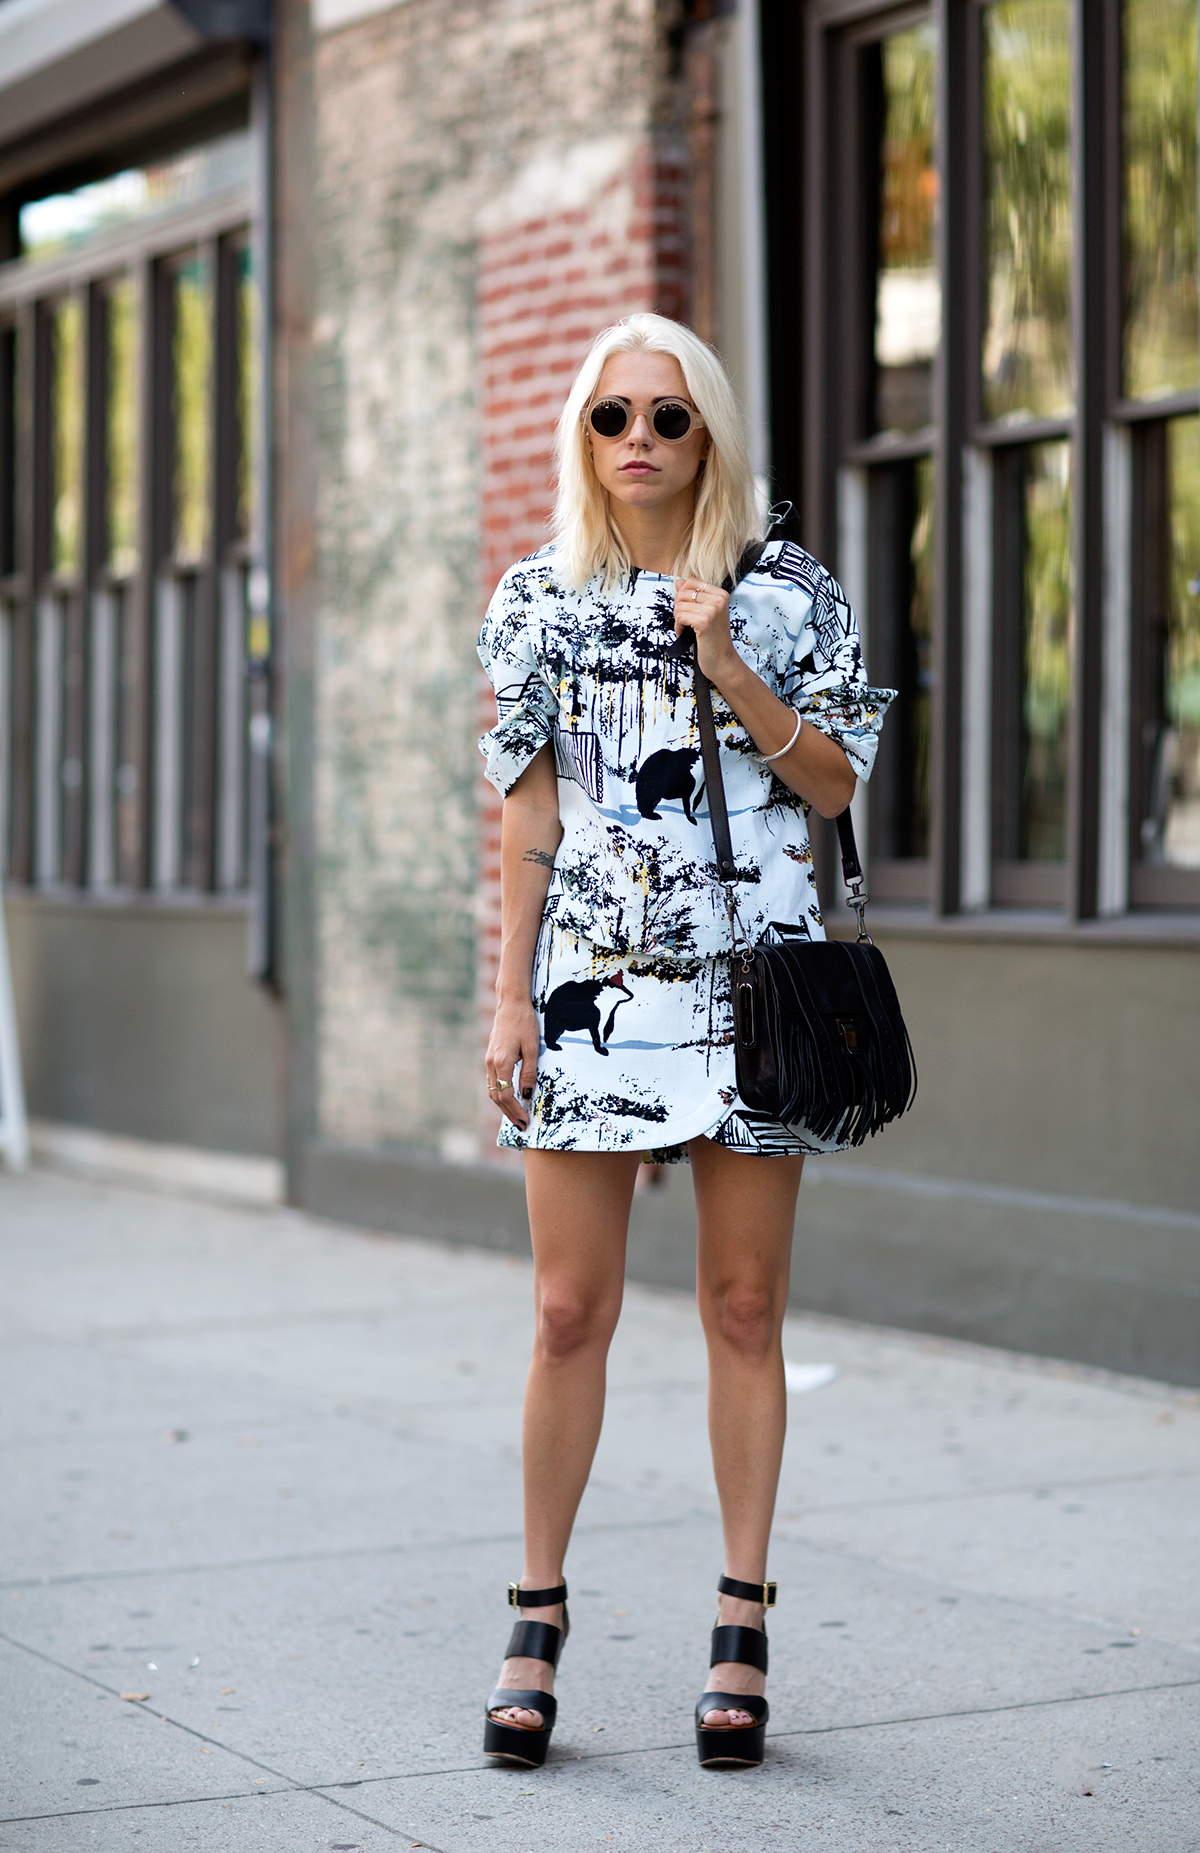 Courtney Trop is wearing matching printed top and skirt from Tibi, sunglasses from Manifesto, wedges from Chloe and the bag is from Proenza Schouler